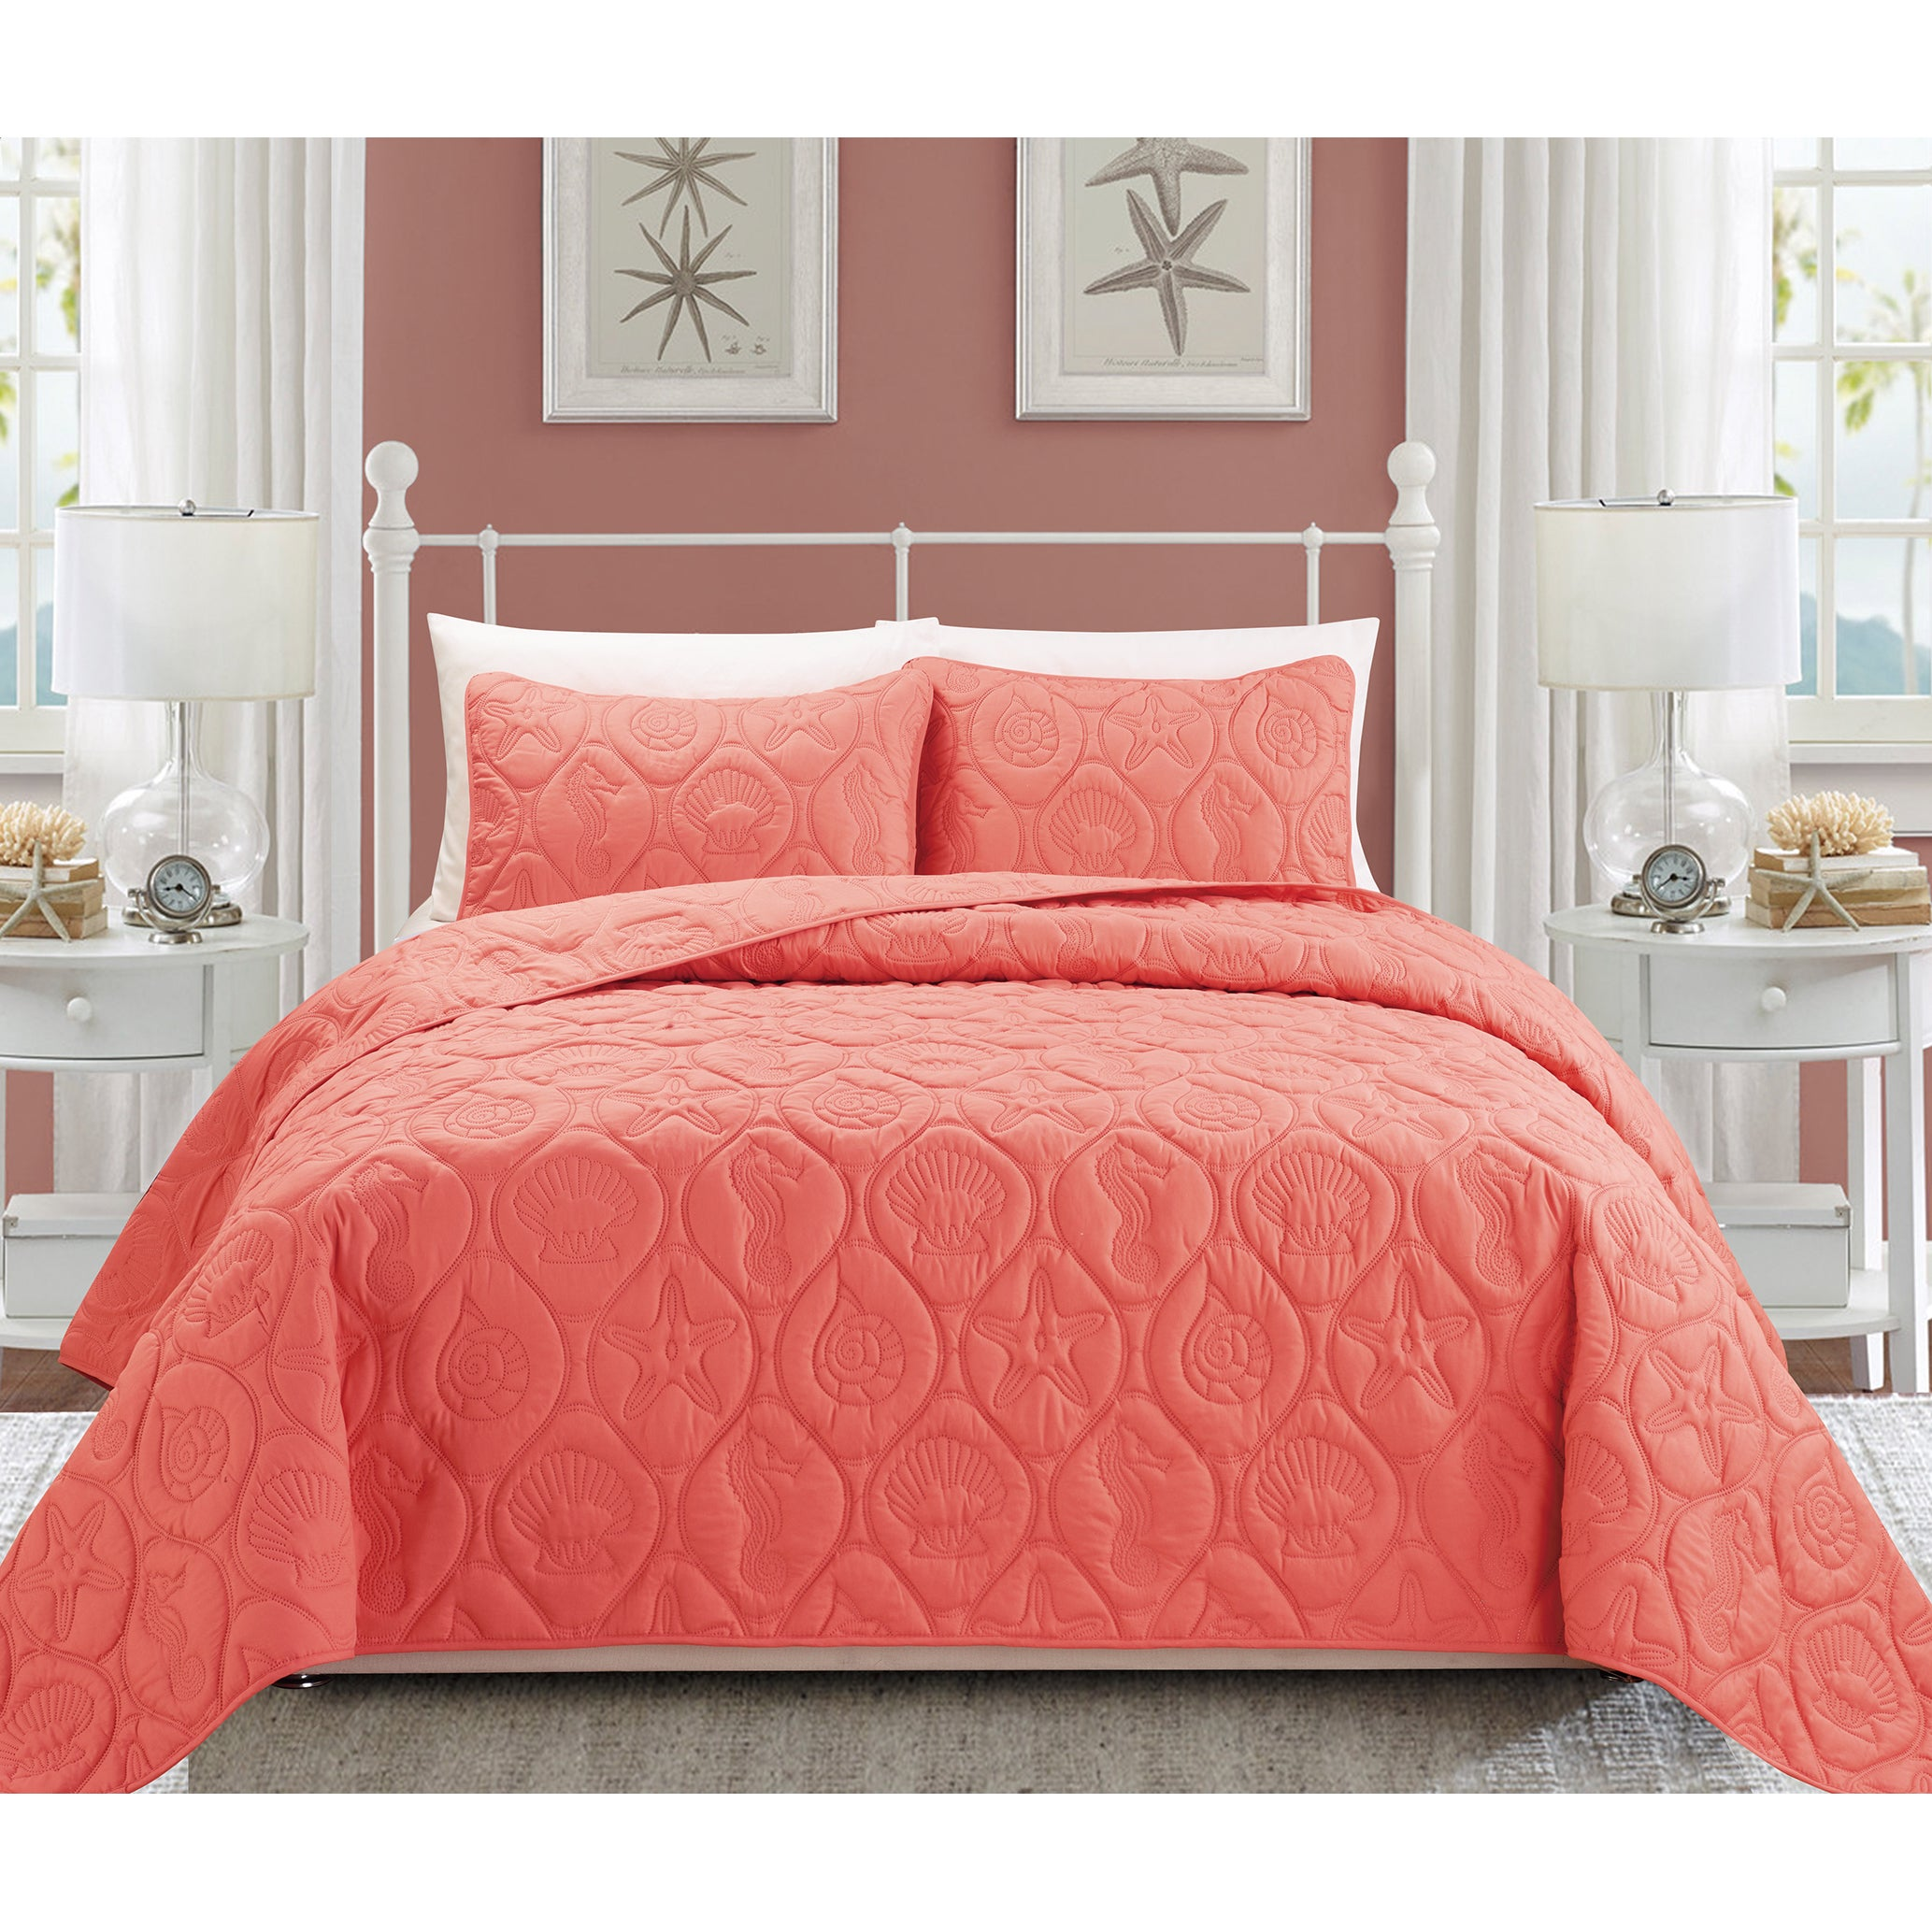 for ideas sea with theme bedroom set pin beautiful grey comforter gorgeous coral bedding ocean